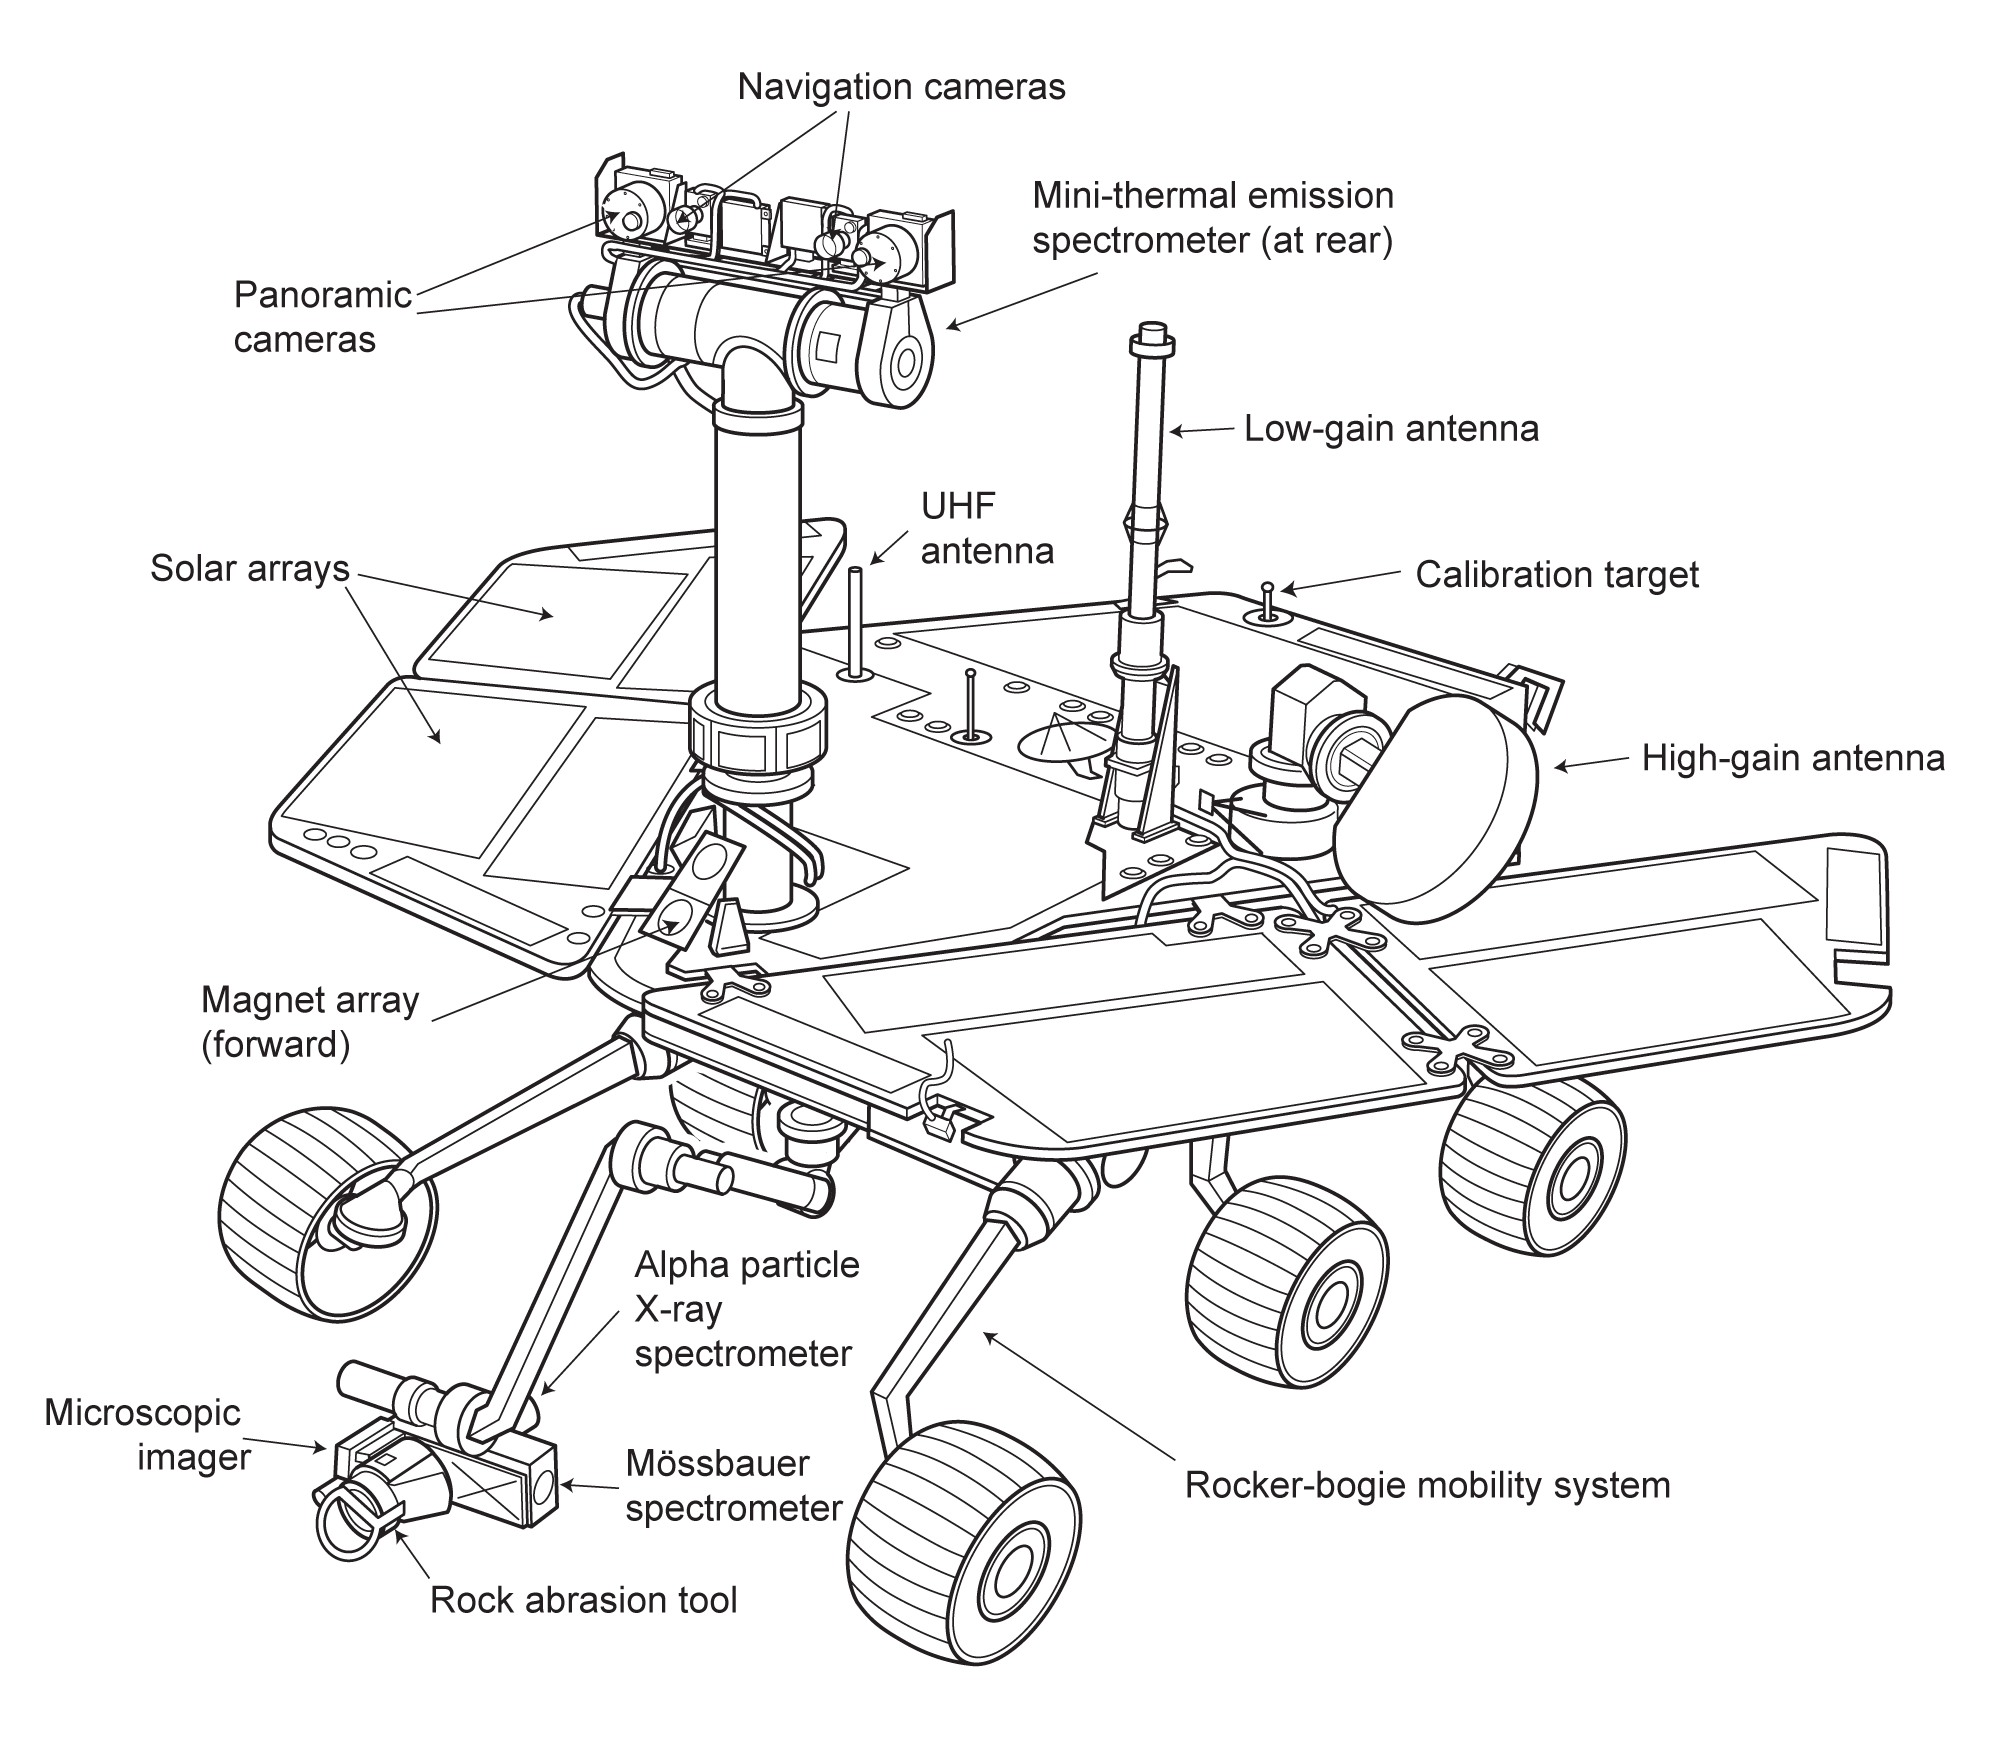 Mars Exploration Rover Spacecraft Diagram